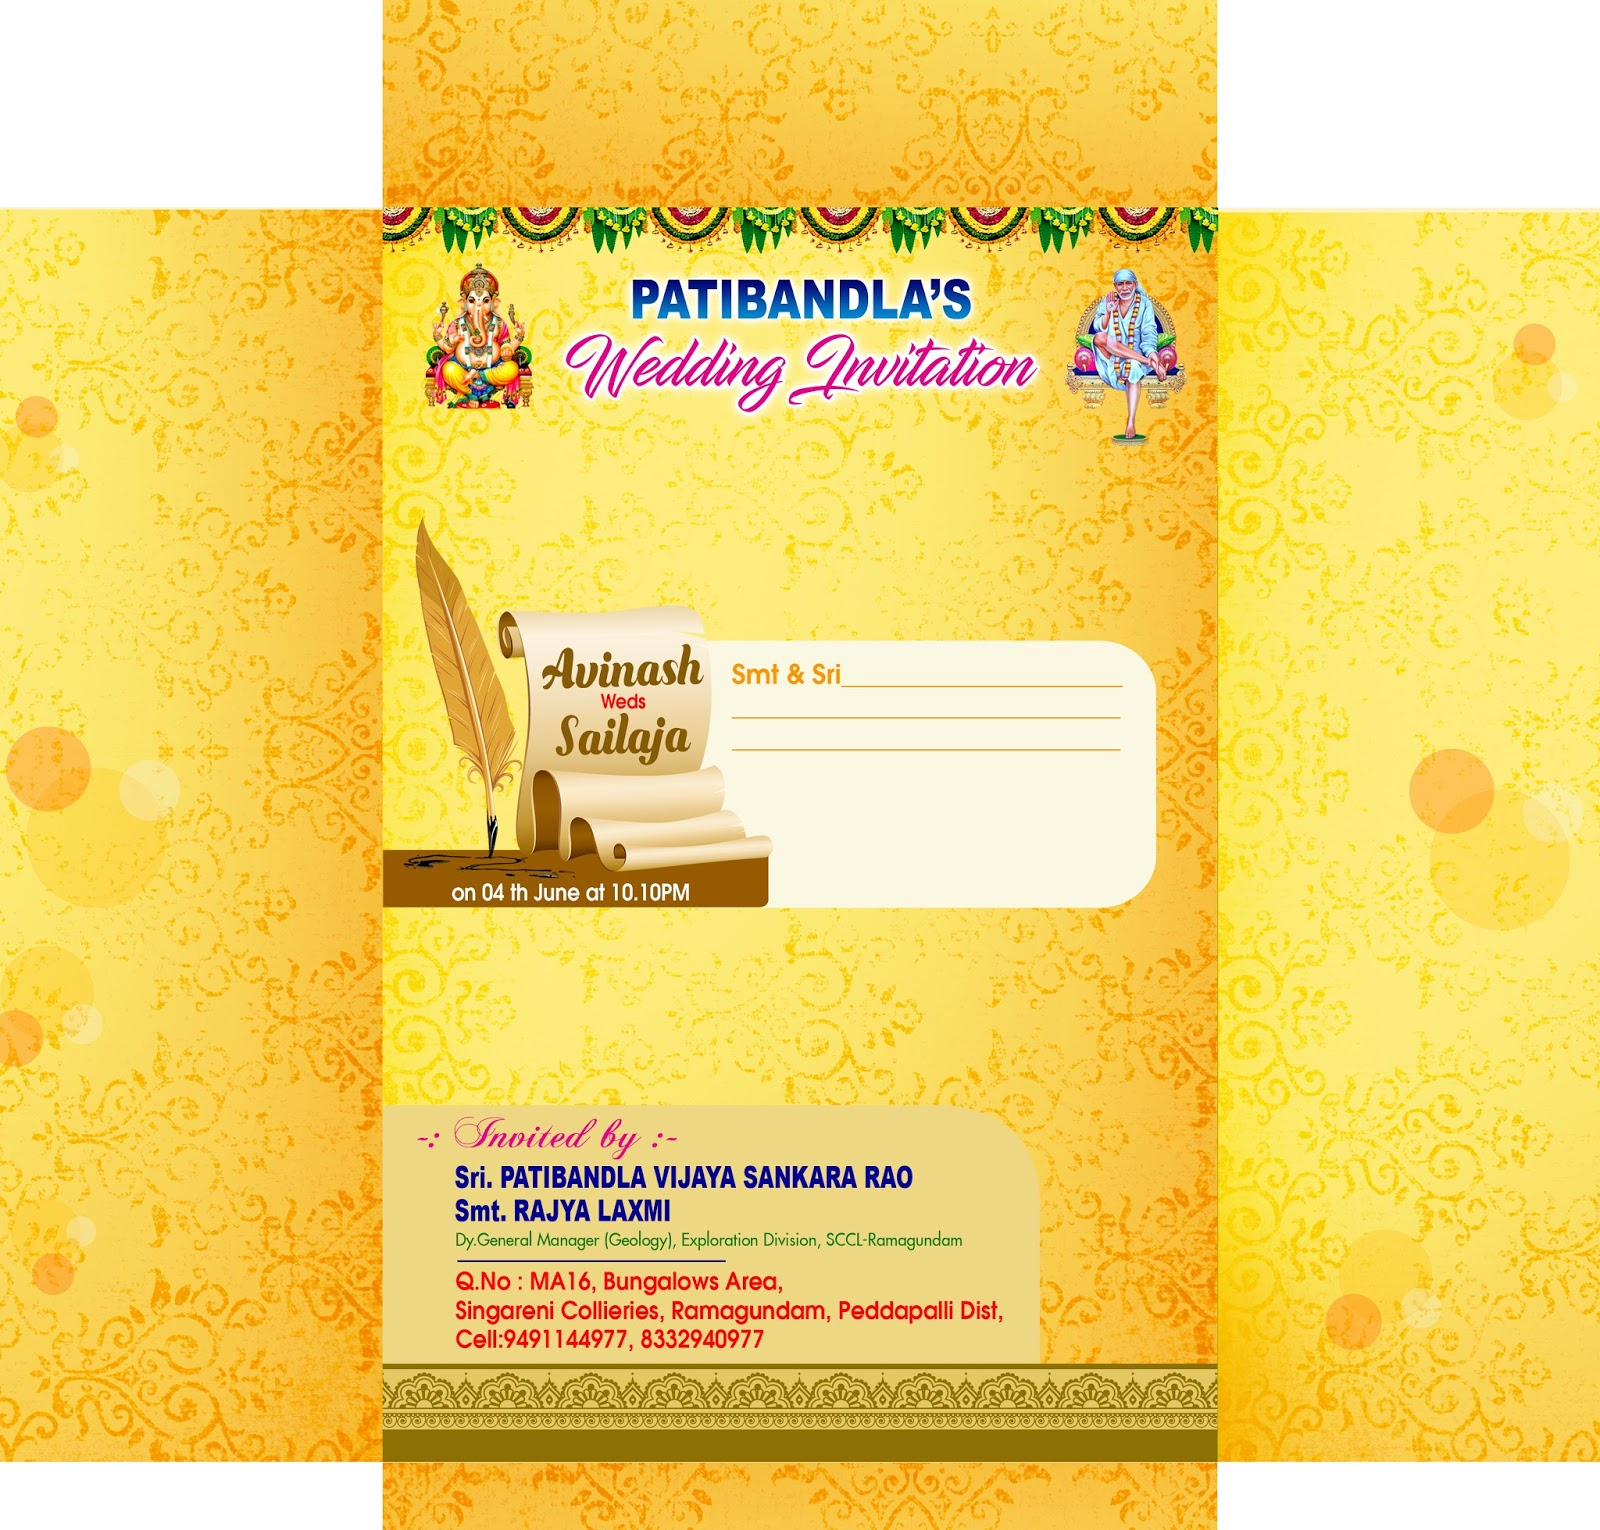 Wedding invitation card psd template free downloads for photoshop hindu wedding invitation cover design psd vector template download link stopboris Image collections